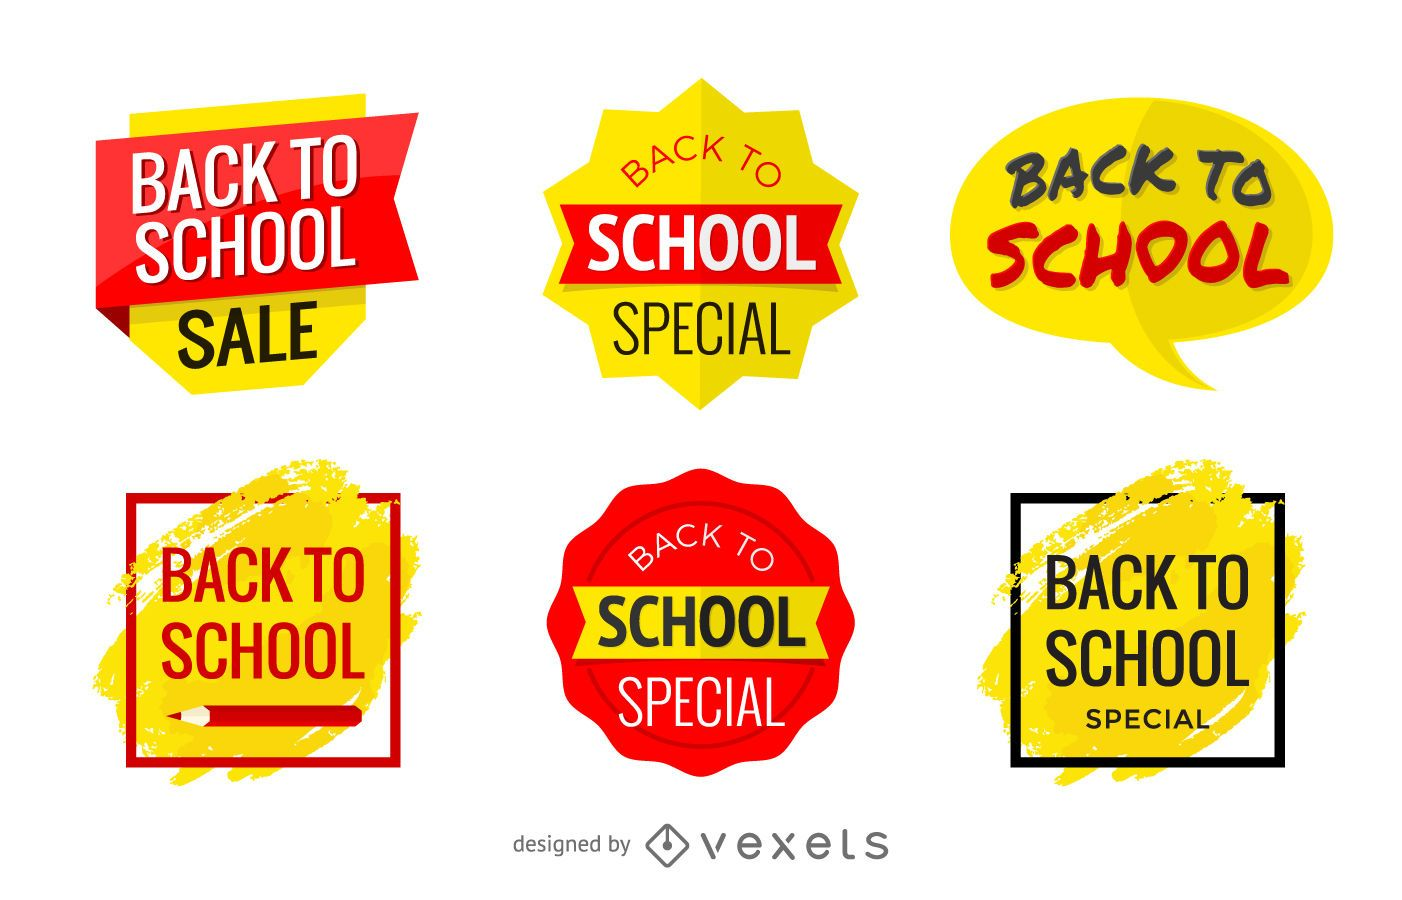 Back to school promo badges and sale banners